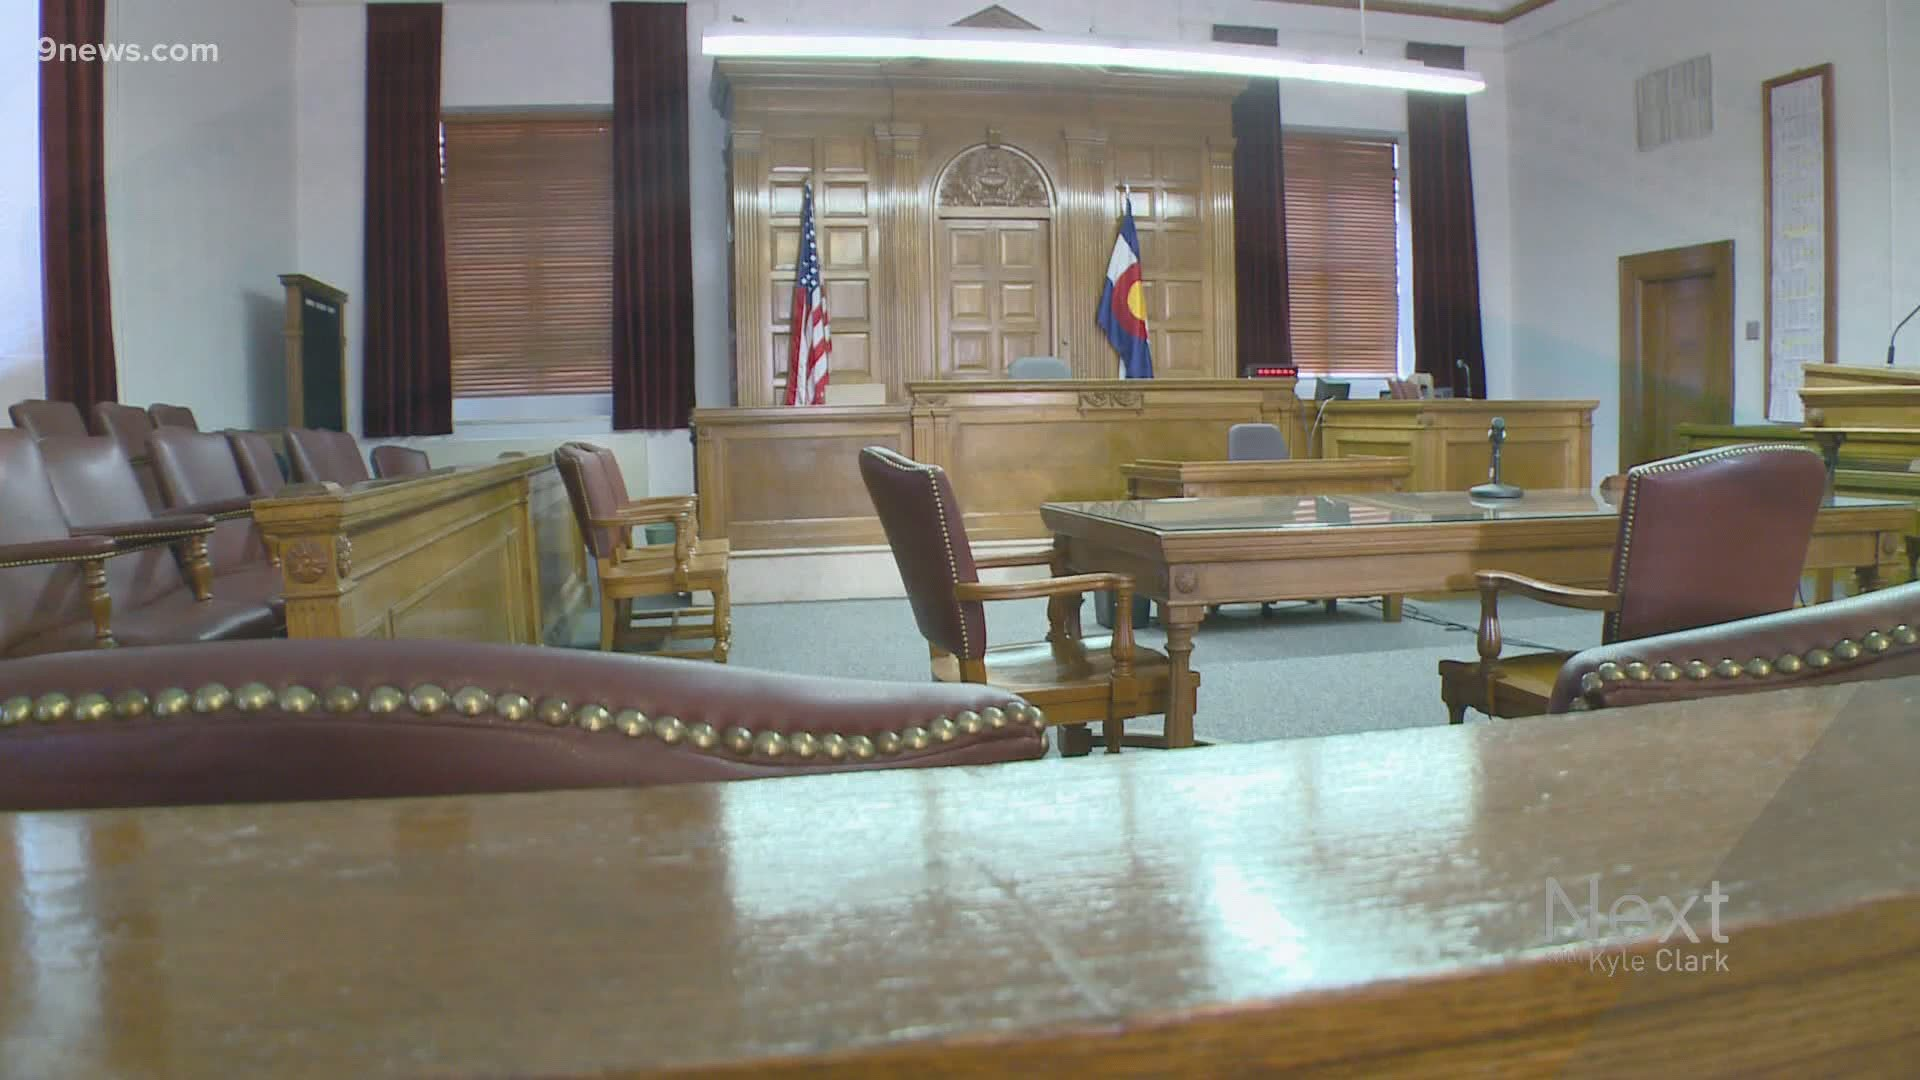 Jury duty to resume in Denver; What you need to know | 9news.com